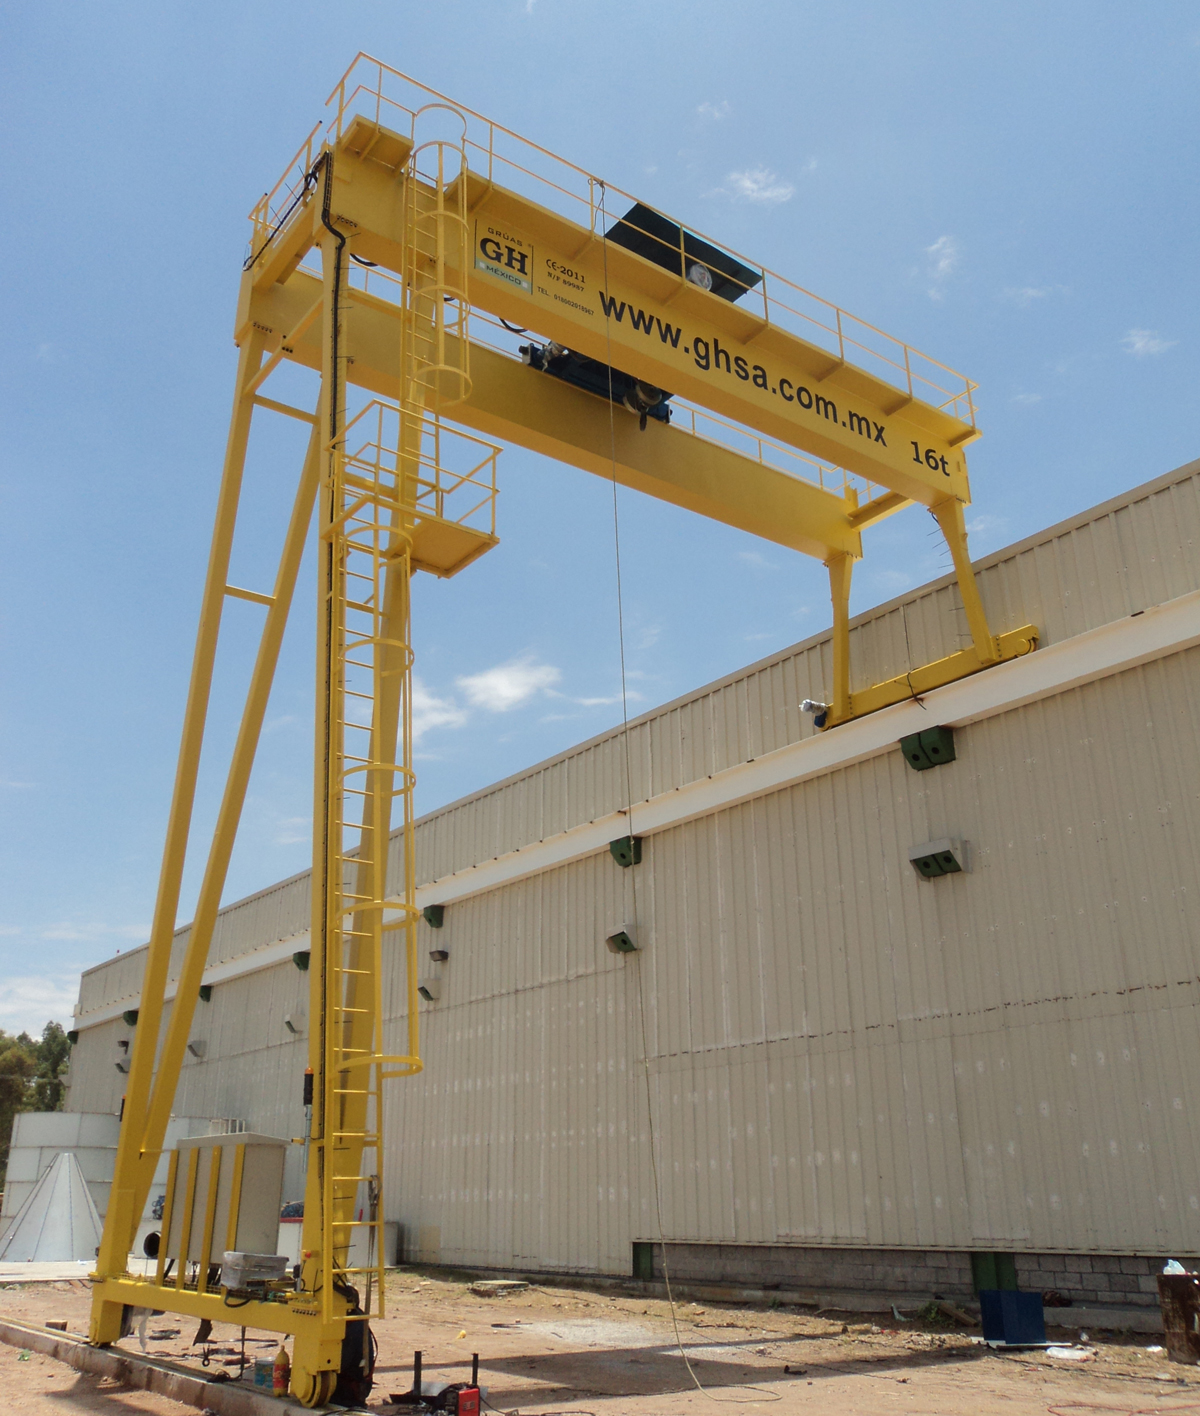 <br>Semi gantry-crane with 16t lifting capacity hoist installed in Mexico